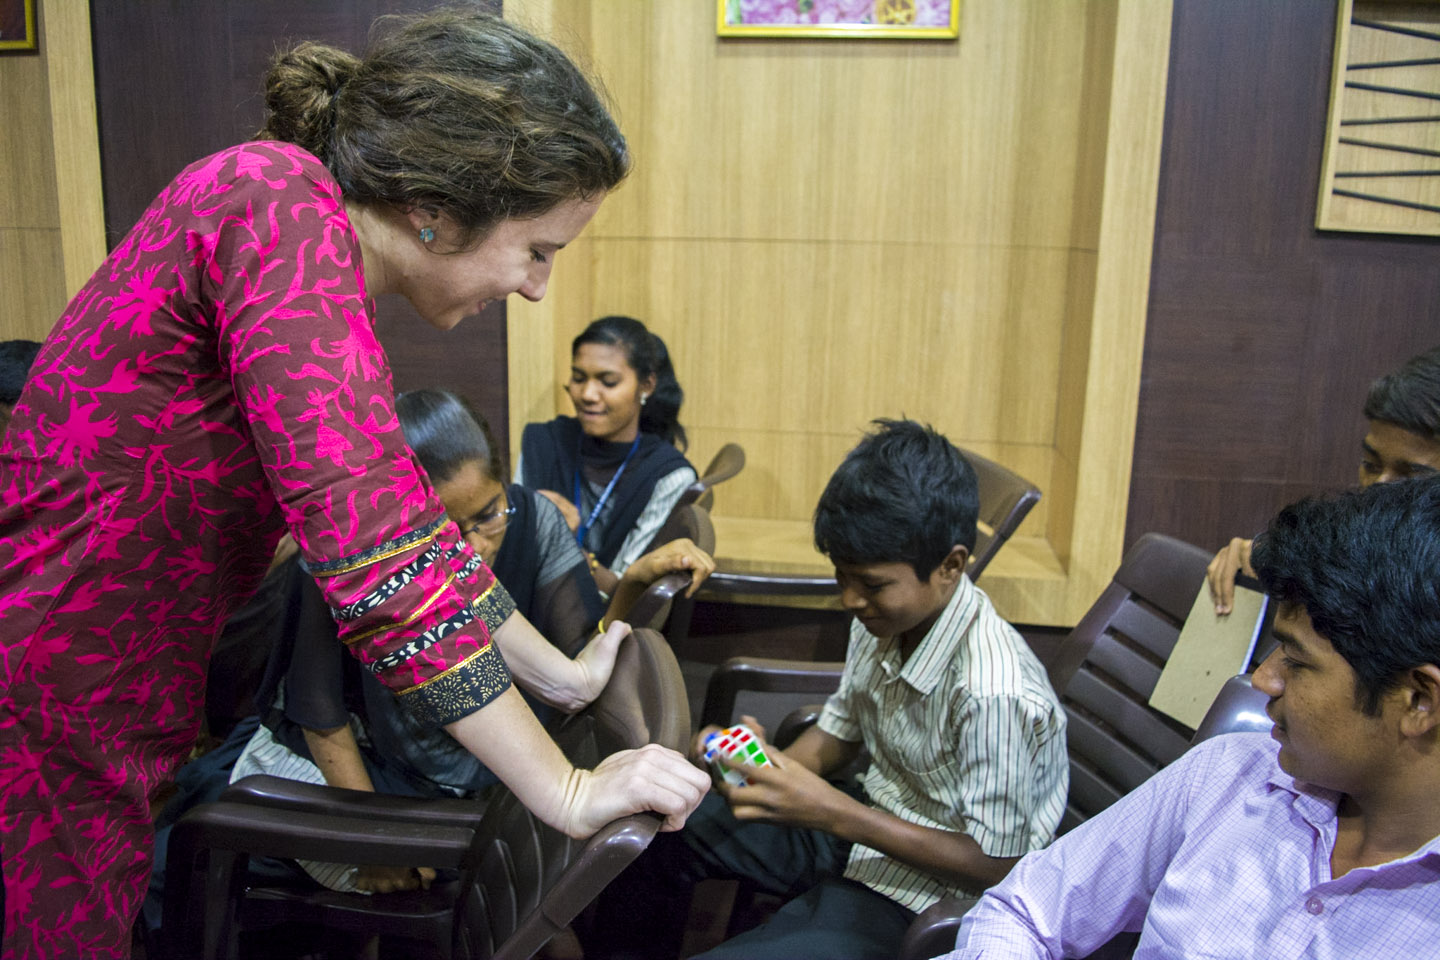 Teacher interacting with children in classroom at a school in India